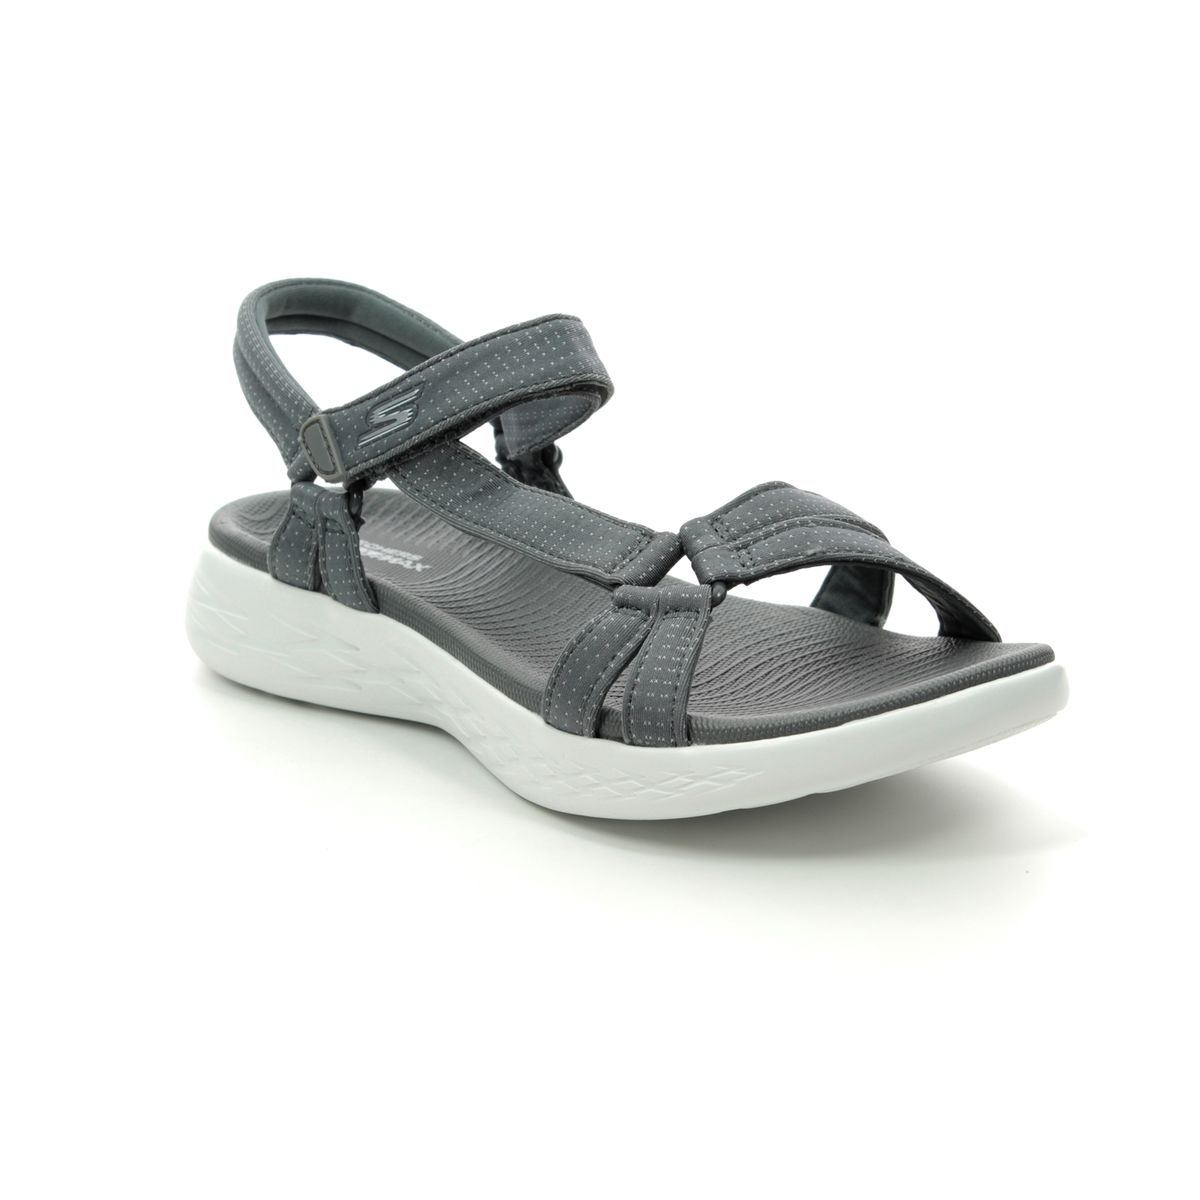 5e68c857c387 Skechers Brilliancy 15316 CHAR Charcoal Walking Sandals